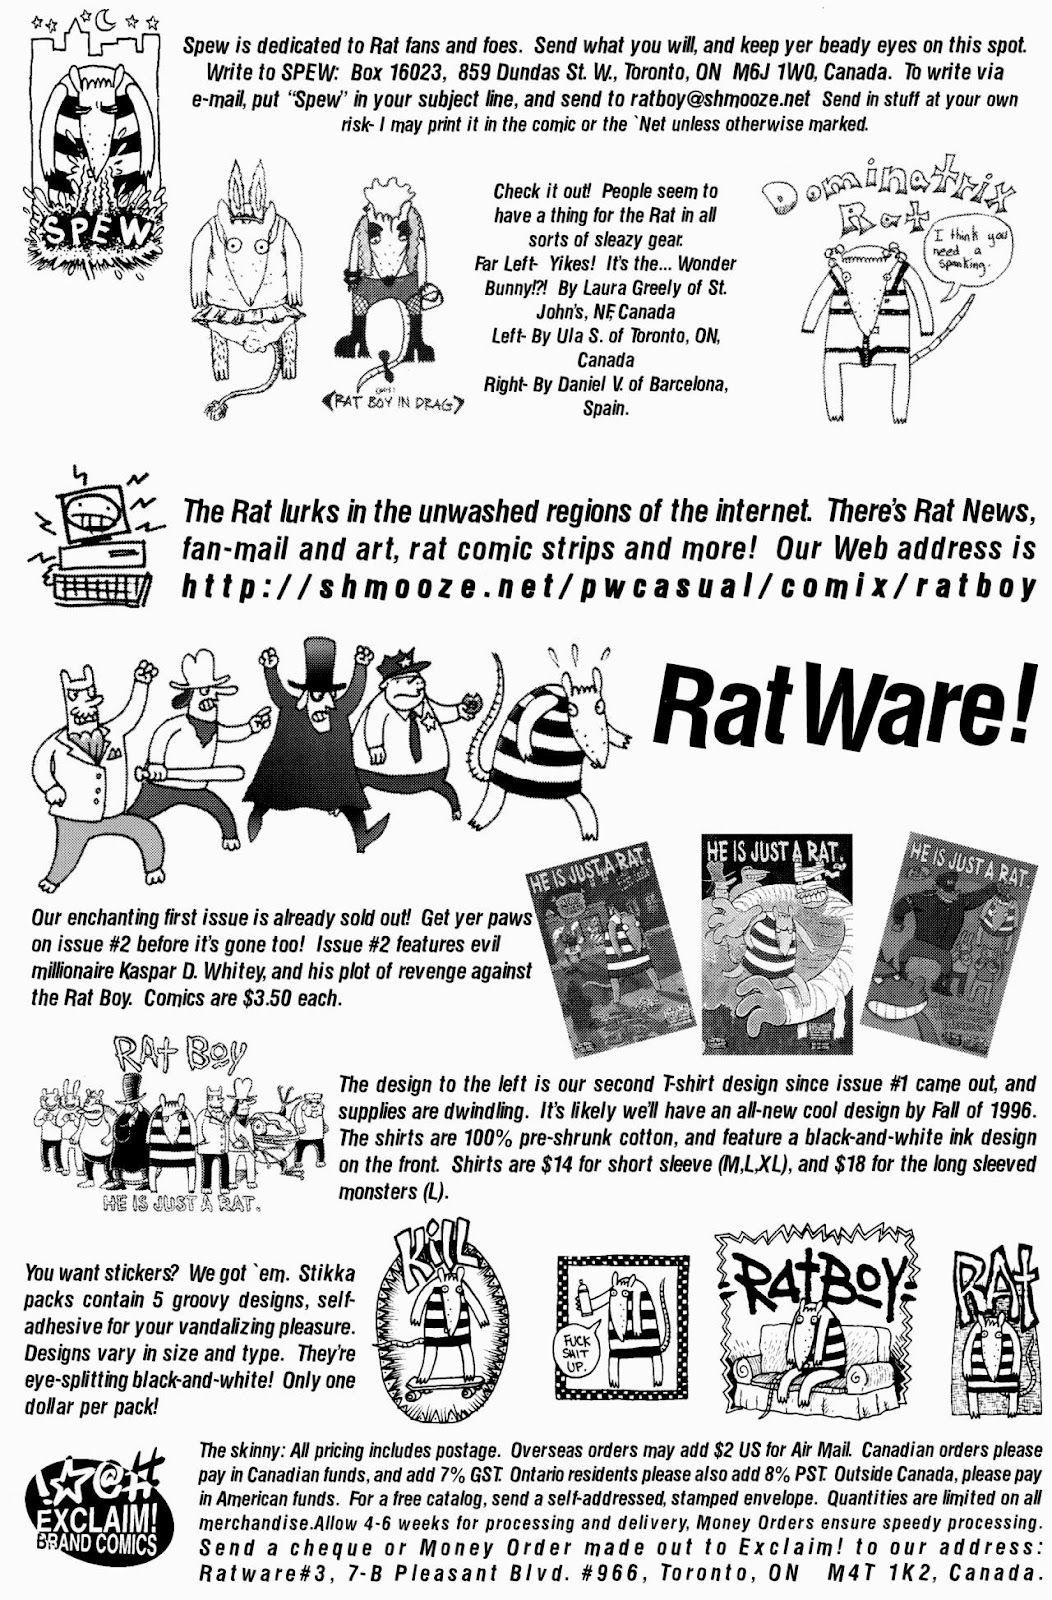 Read online He is Just a Rat comic -  Issue #3 - 2